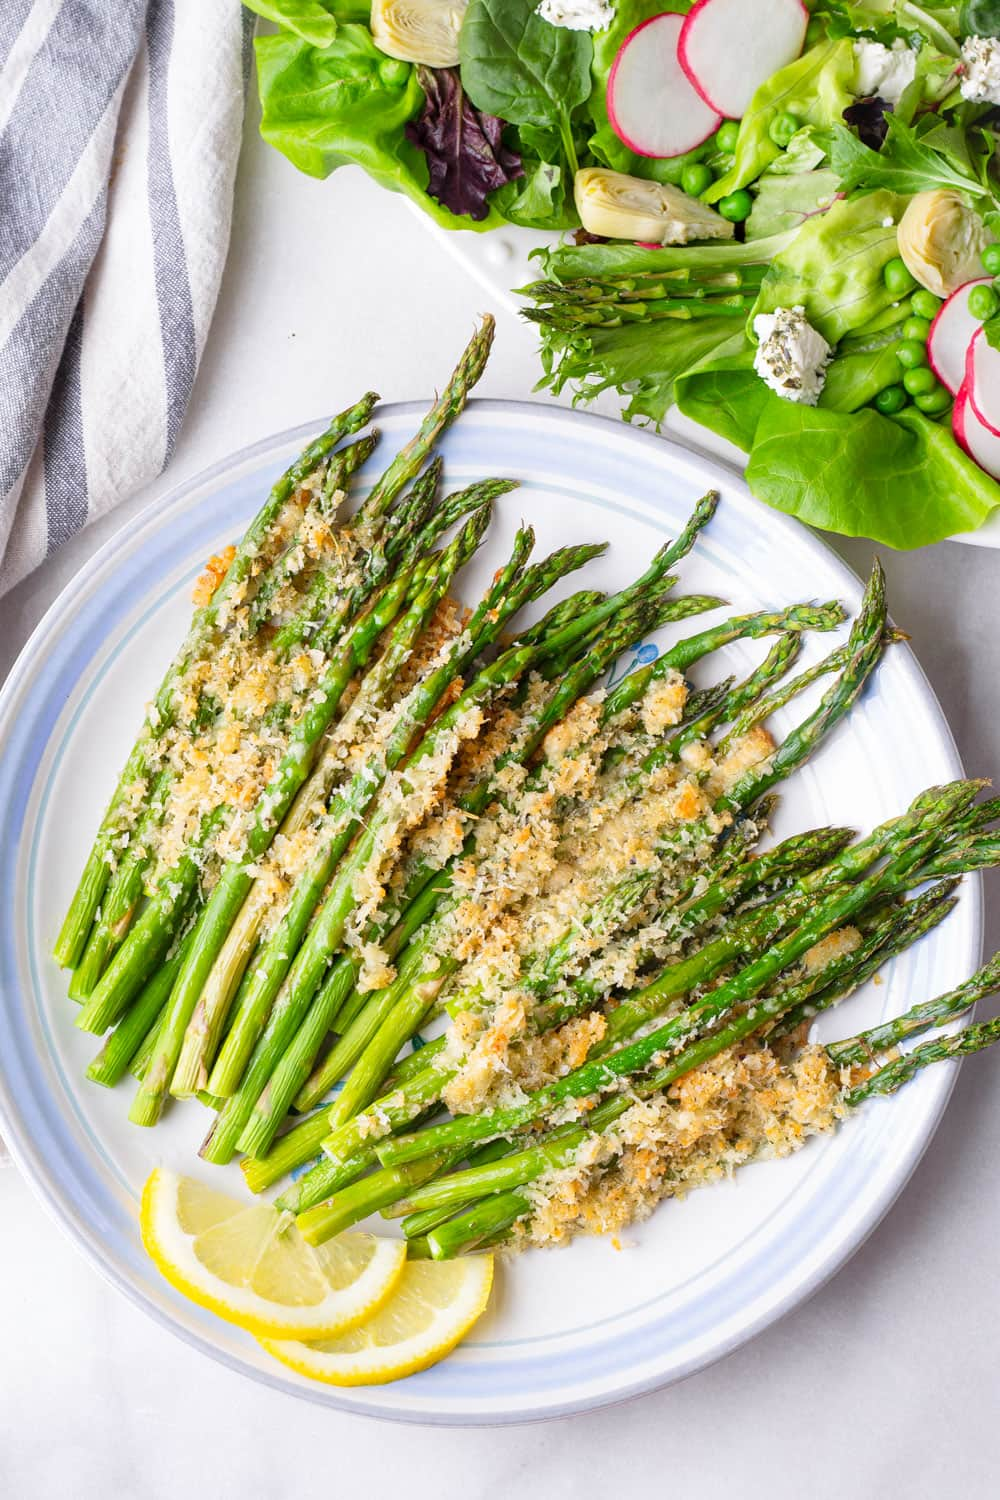 top view of asparagus with breadcrumbs and parmesan topping